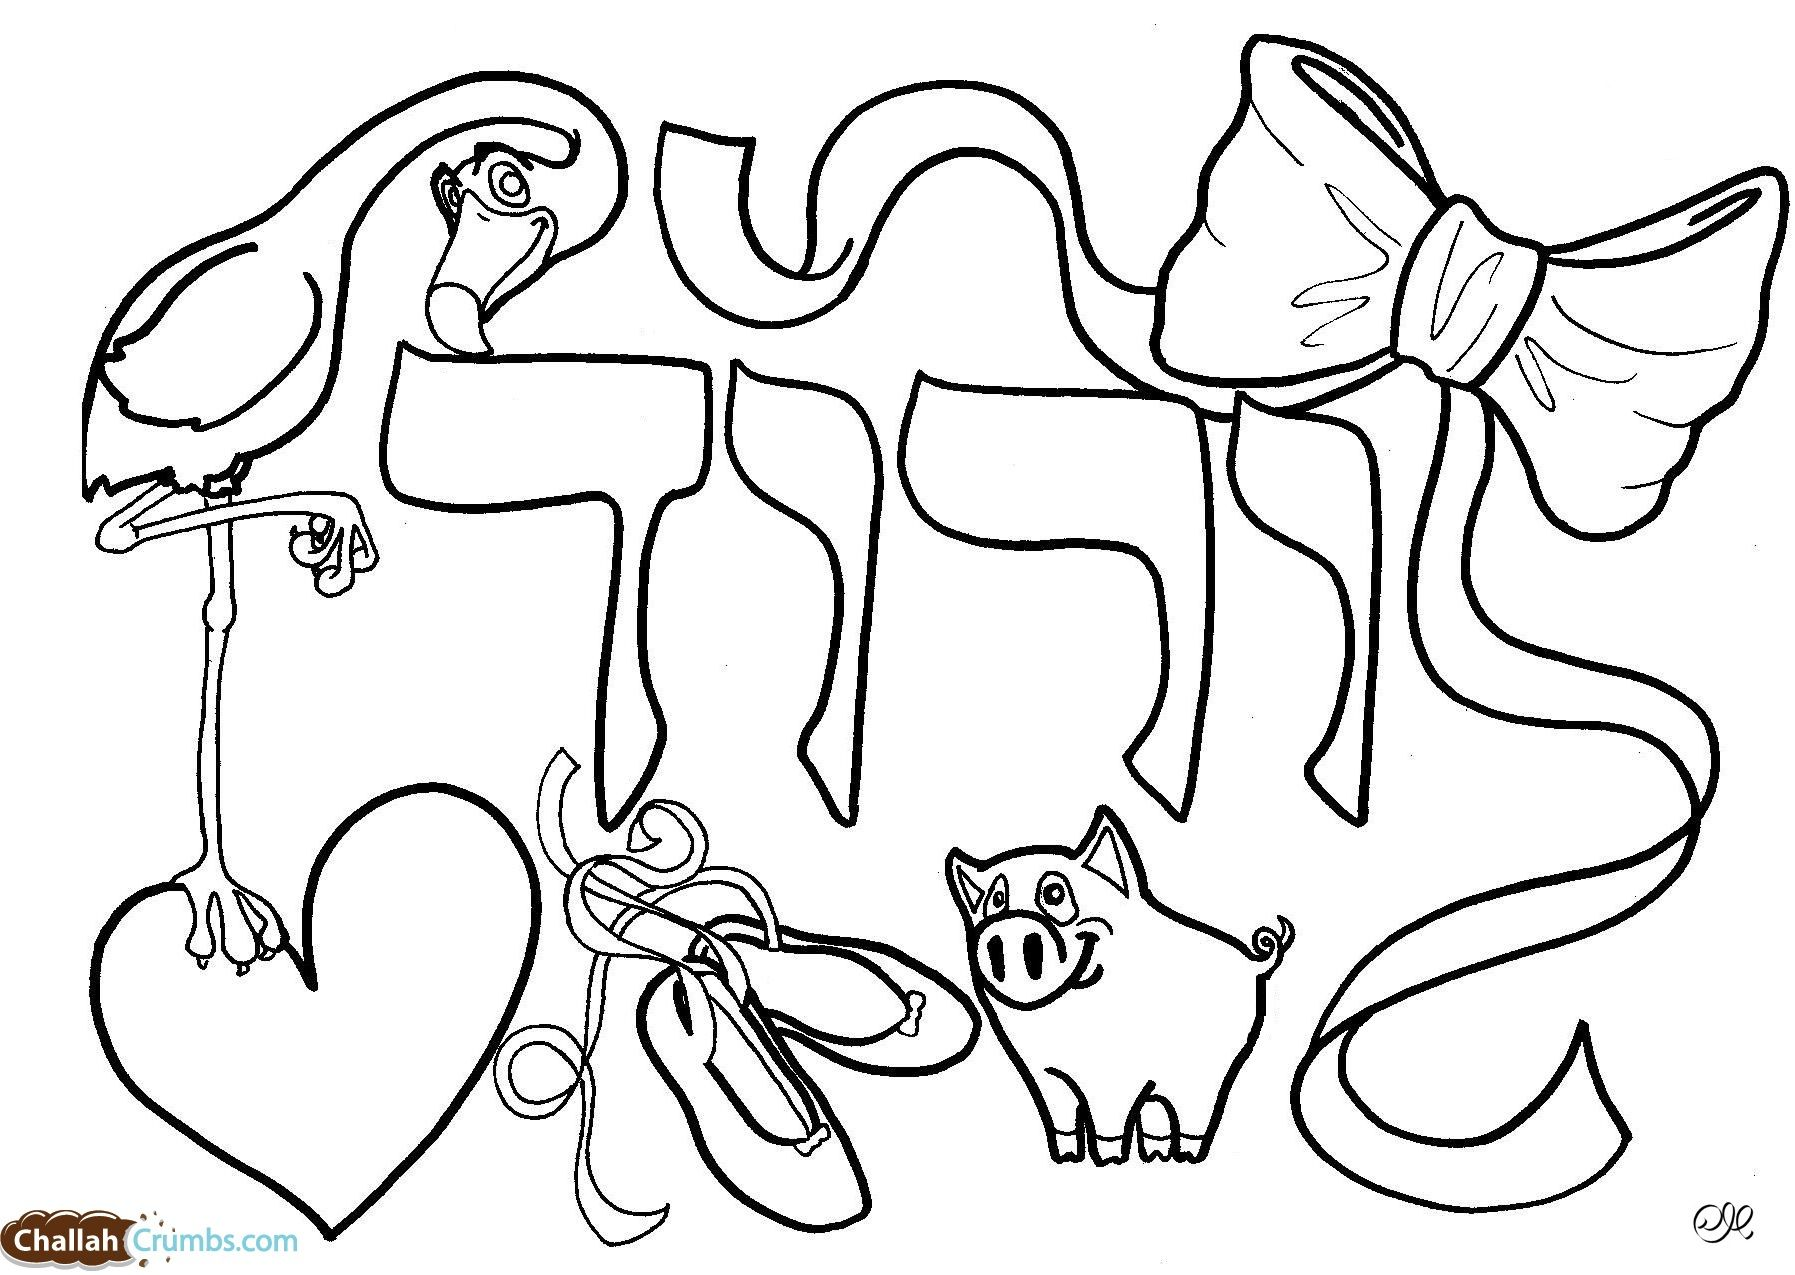 Kids Poems Image By Rebecca Gaguine On Jewish Day School